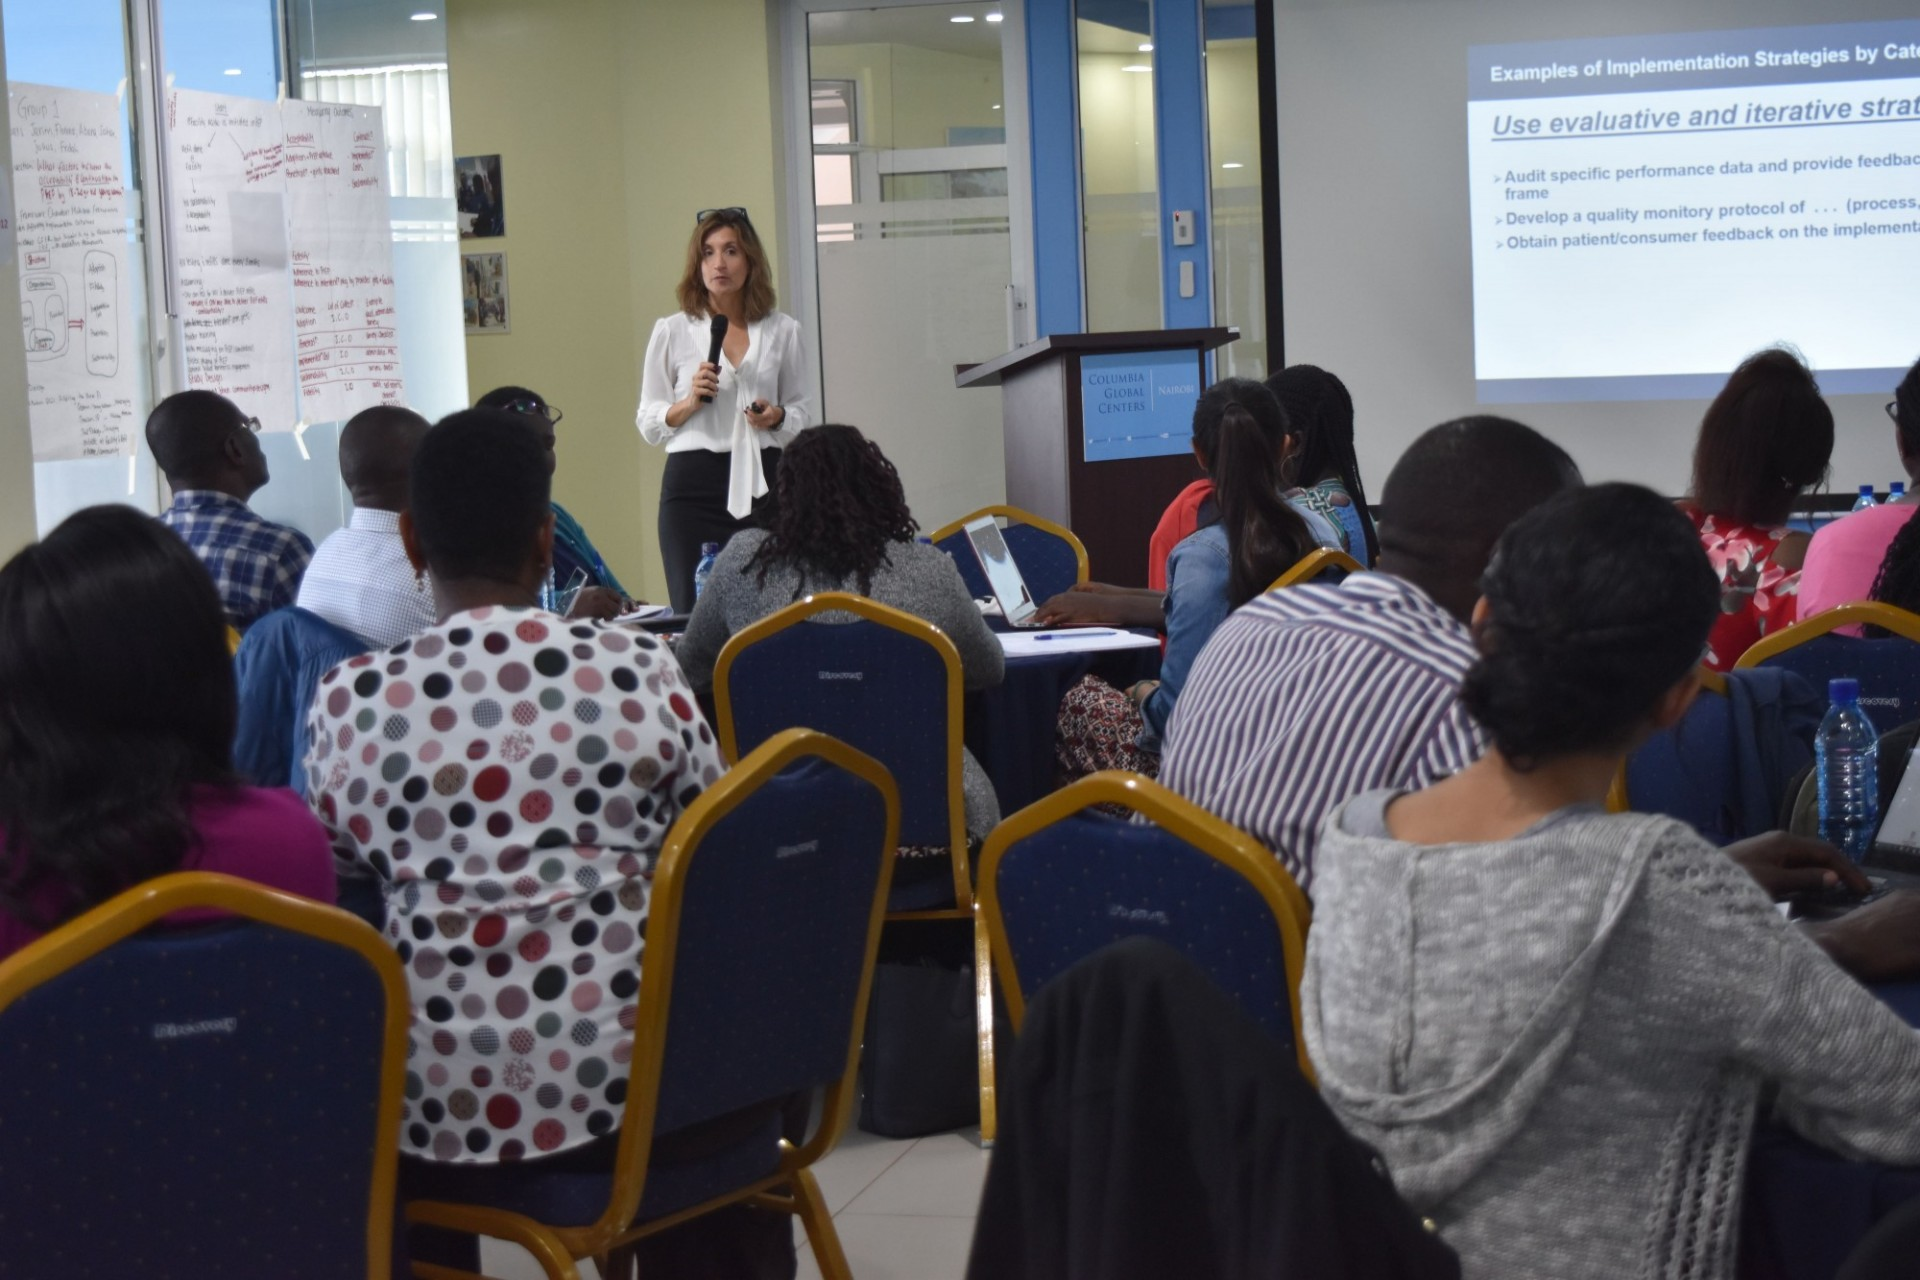 2019 Global Health Implementation Science Workshop